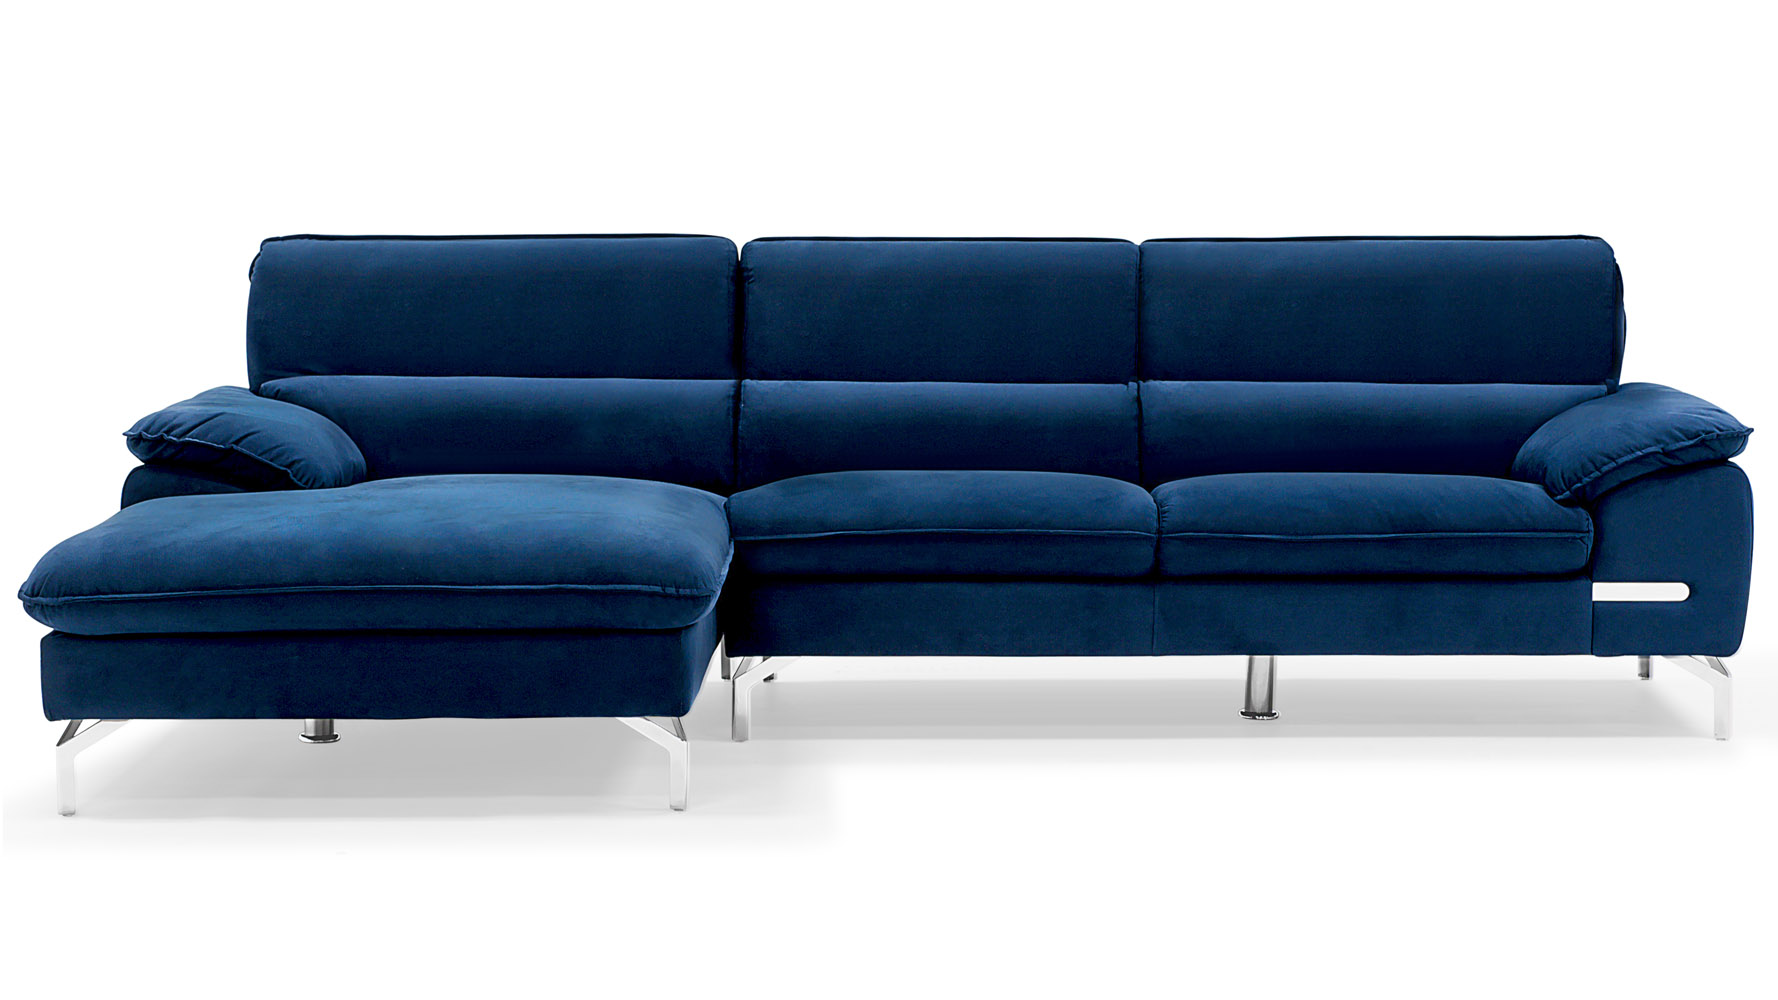 blue sectional sofa with chaise navy blue sectional sofa living room transitional with abstract. Black Bedroom Furniture Sets. Home Design Ideas